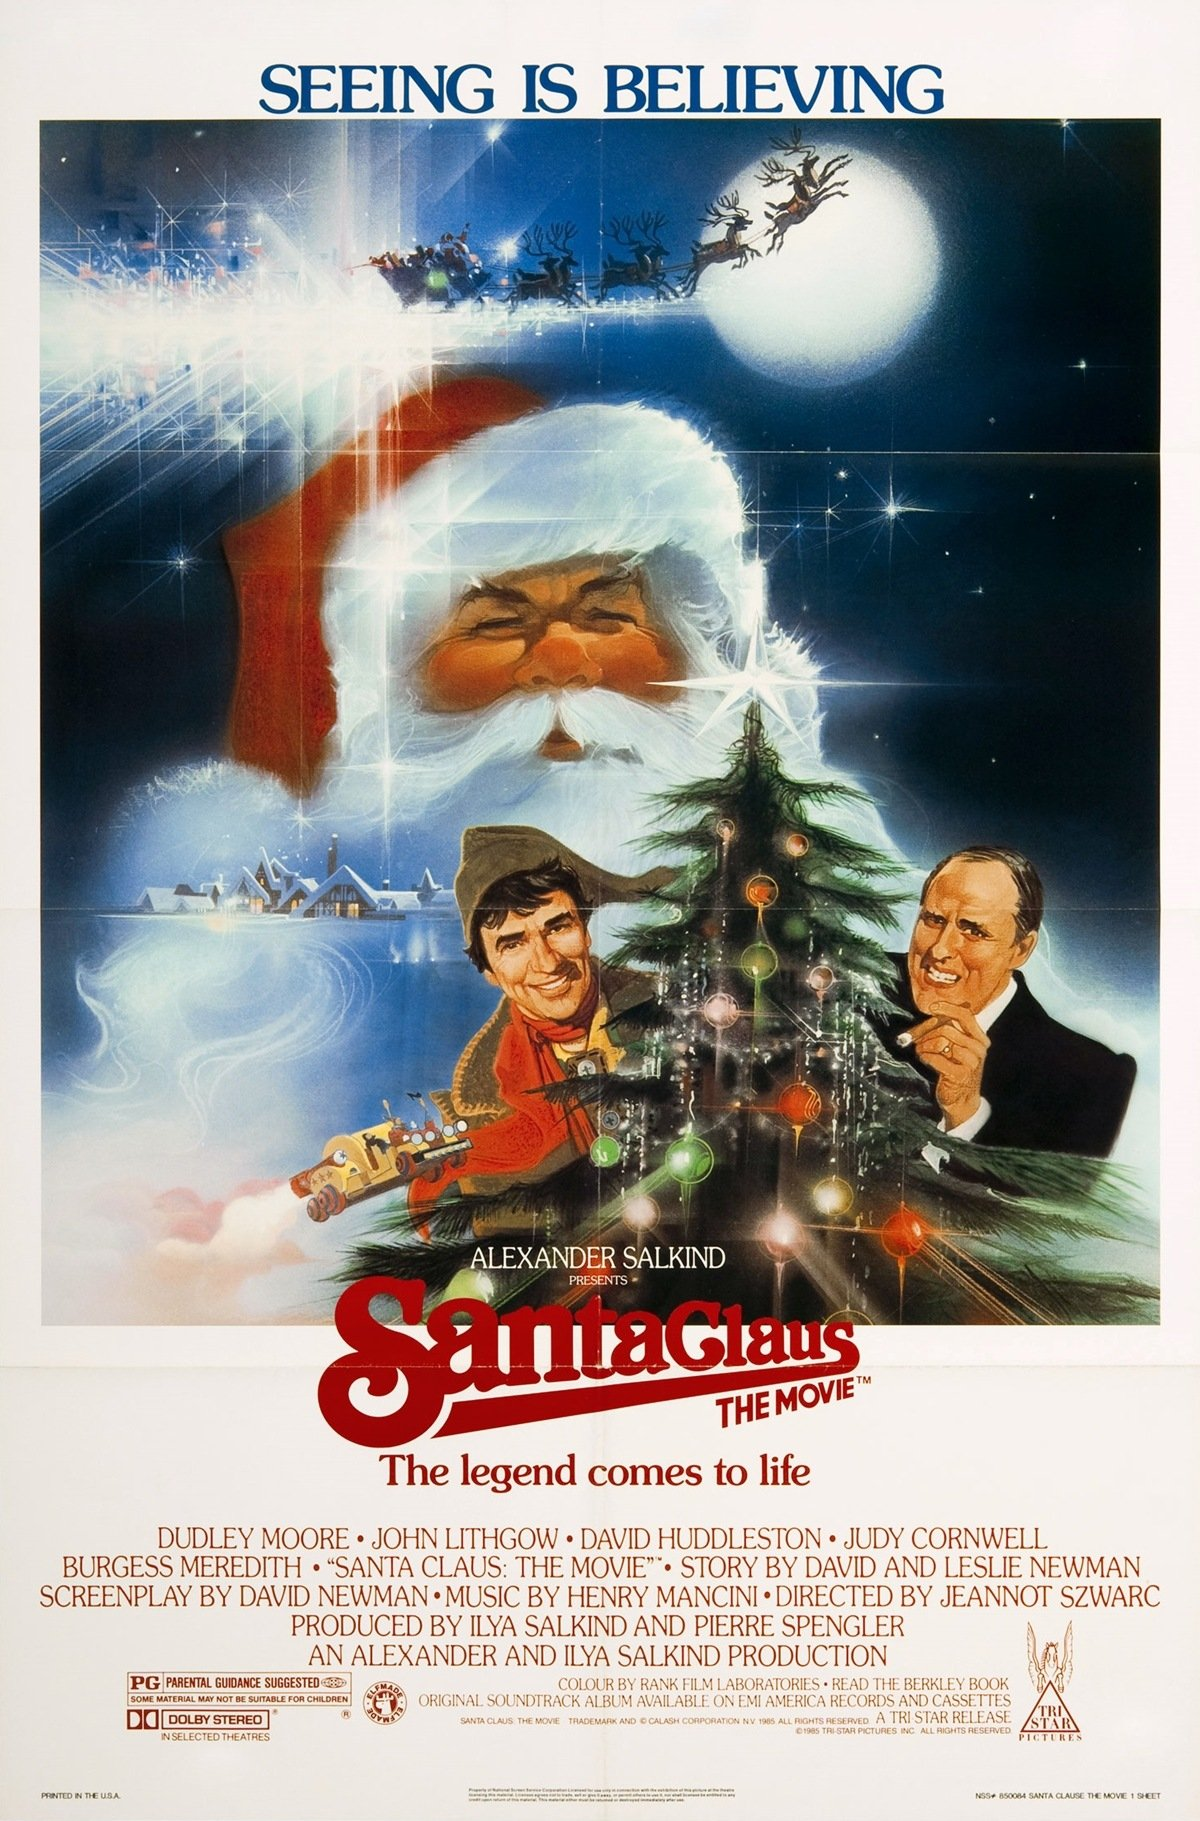 2 20 22 Classic 80s Films On TV This Christmas In The UK!